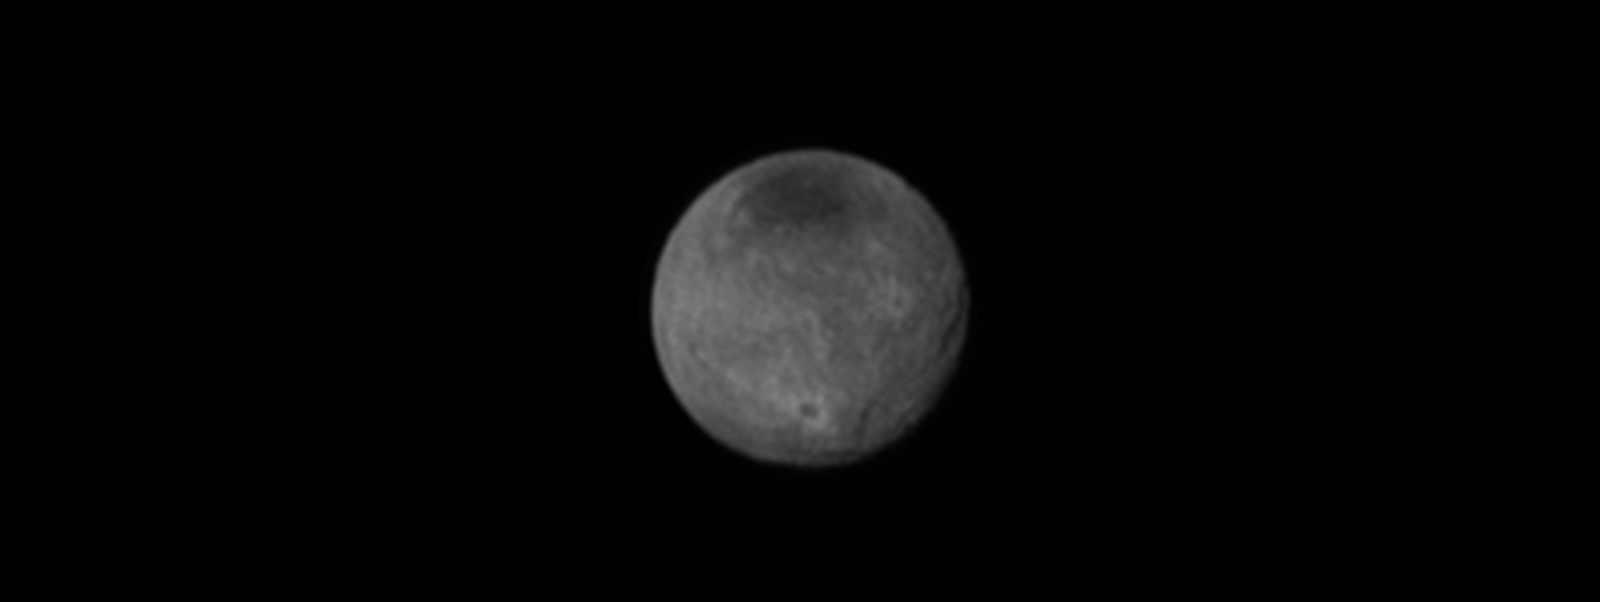 Charon Moon: Pluto And Charon Surprise With Chasms, Cliffs And Craters